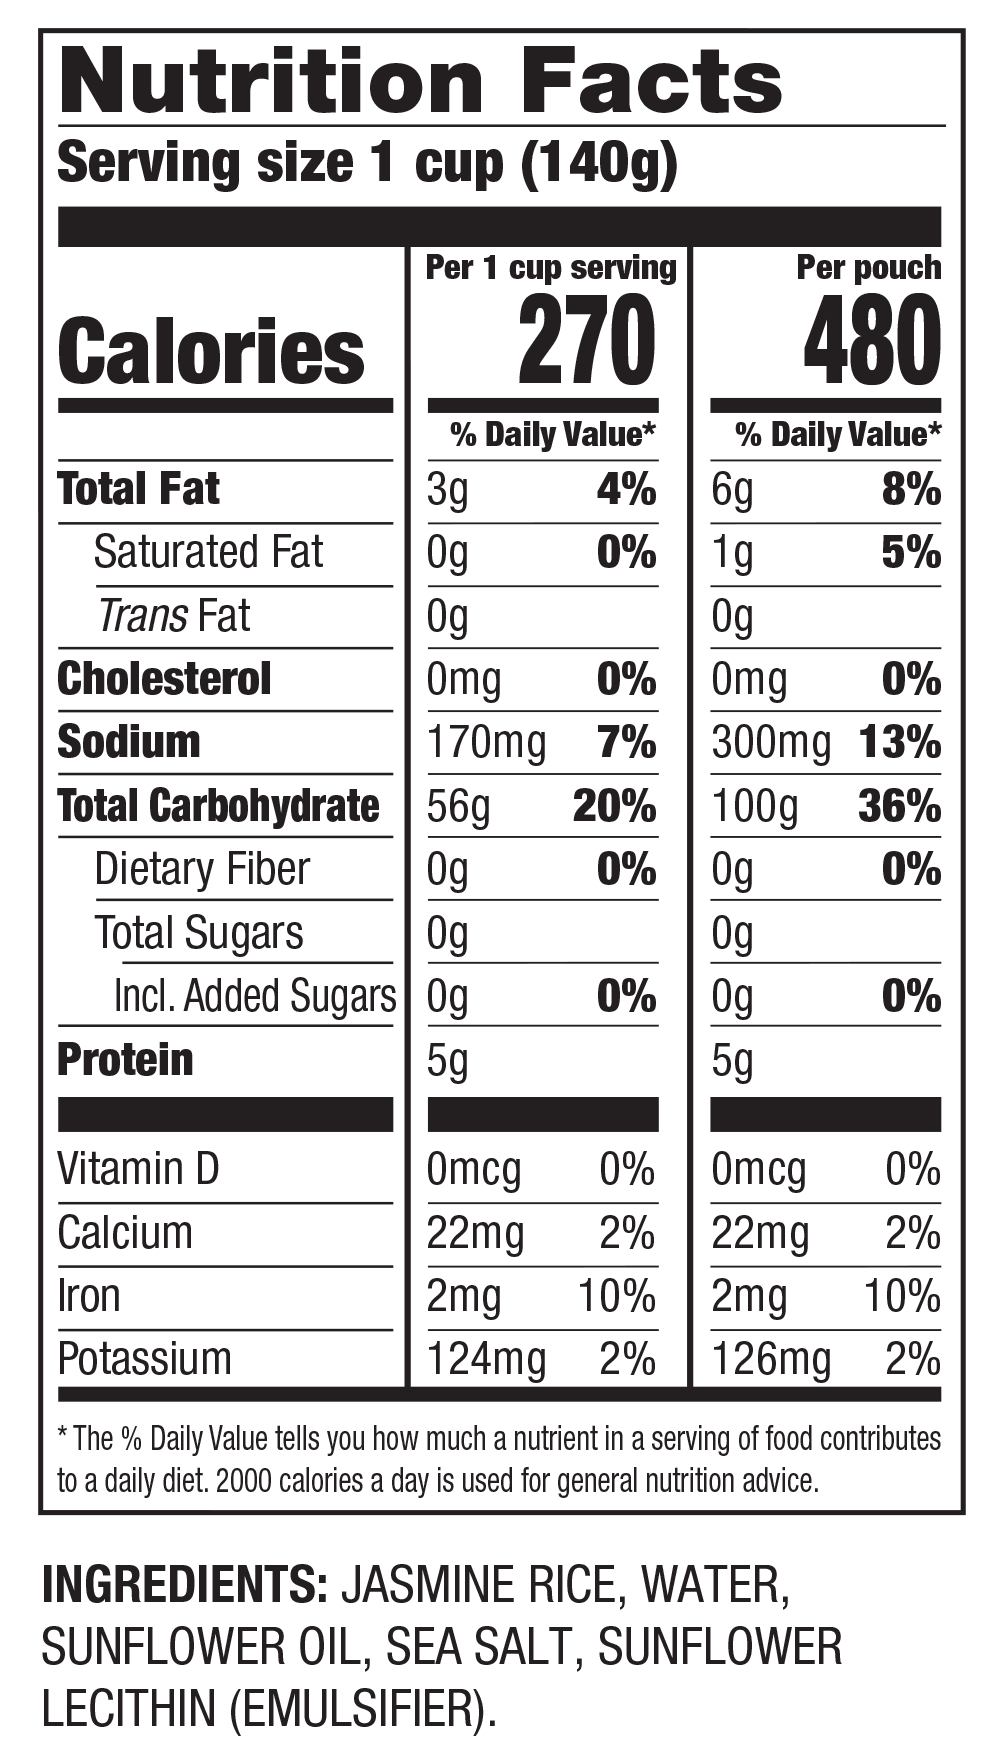 Nutrition Facts White Jasmine Rice | Ready to Heat in 90 Seconds